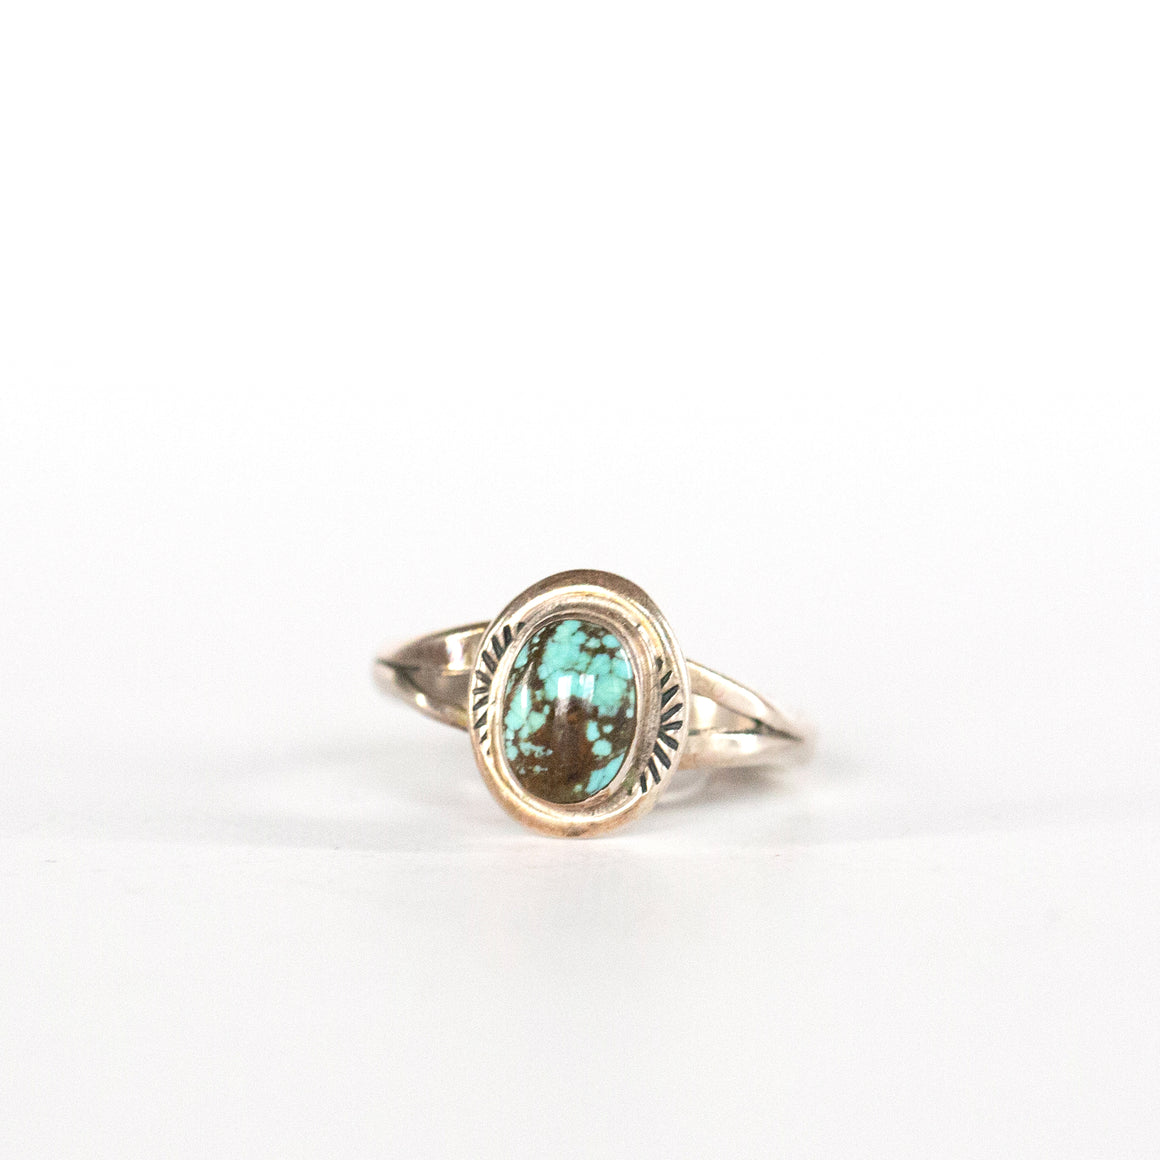 VINTAGE JEWELRY | STERLING TURQUOISE RING (SIZE 7)